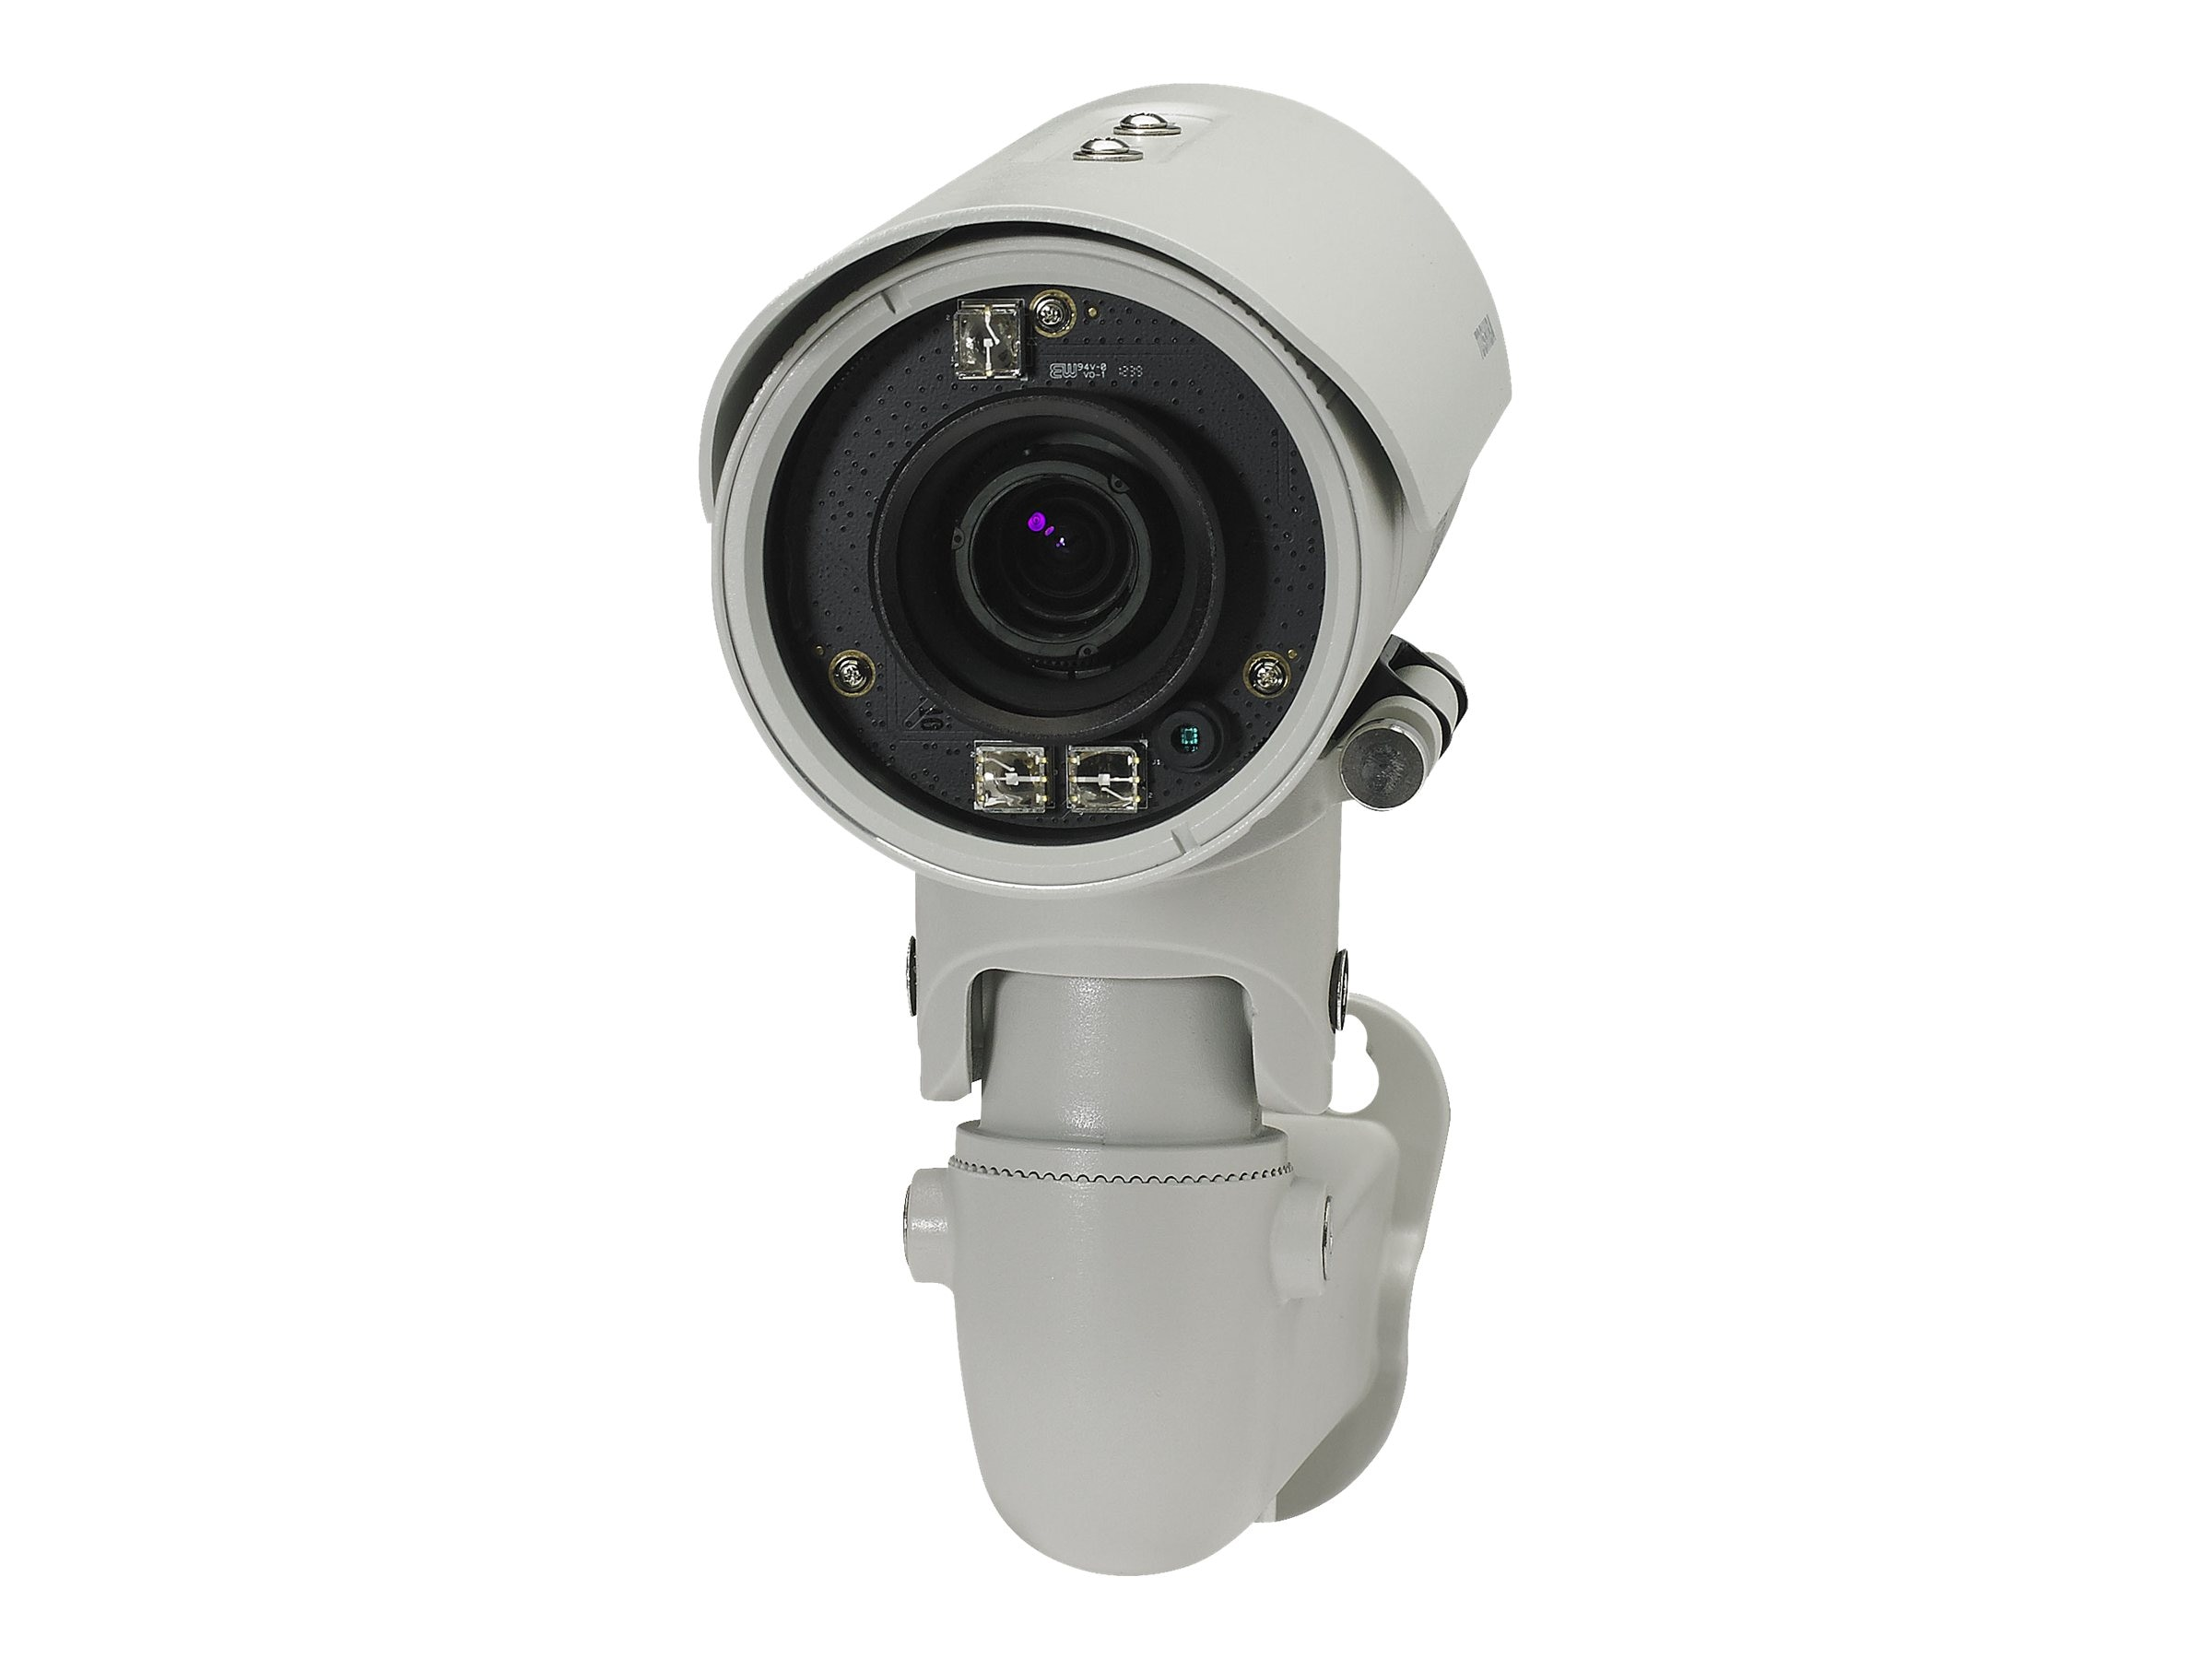 Toshiba IK-WB81A Full HD IP Bullet Camera